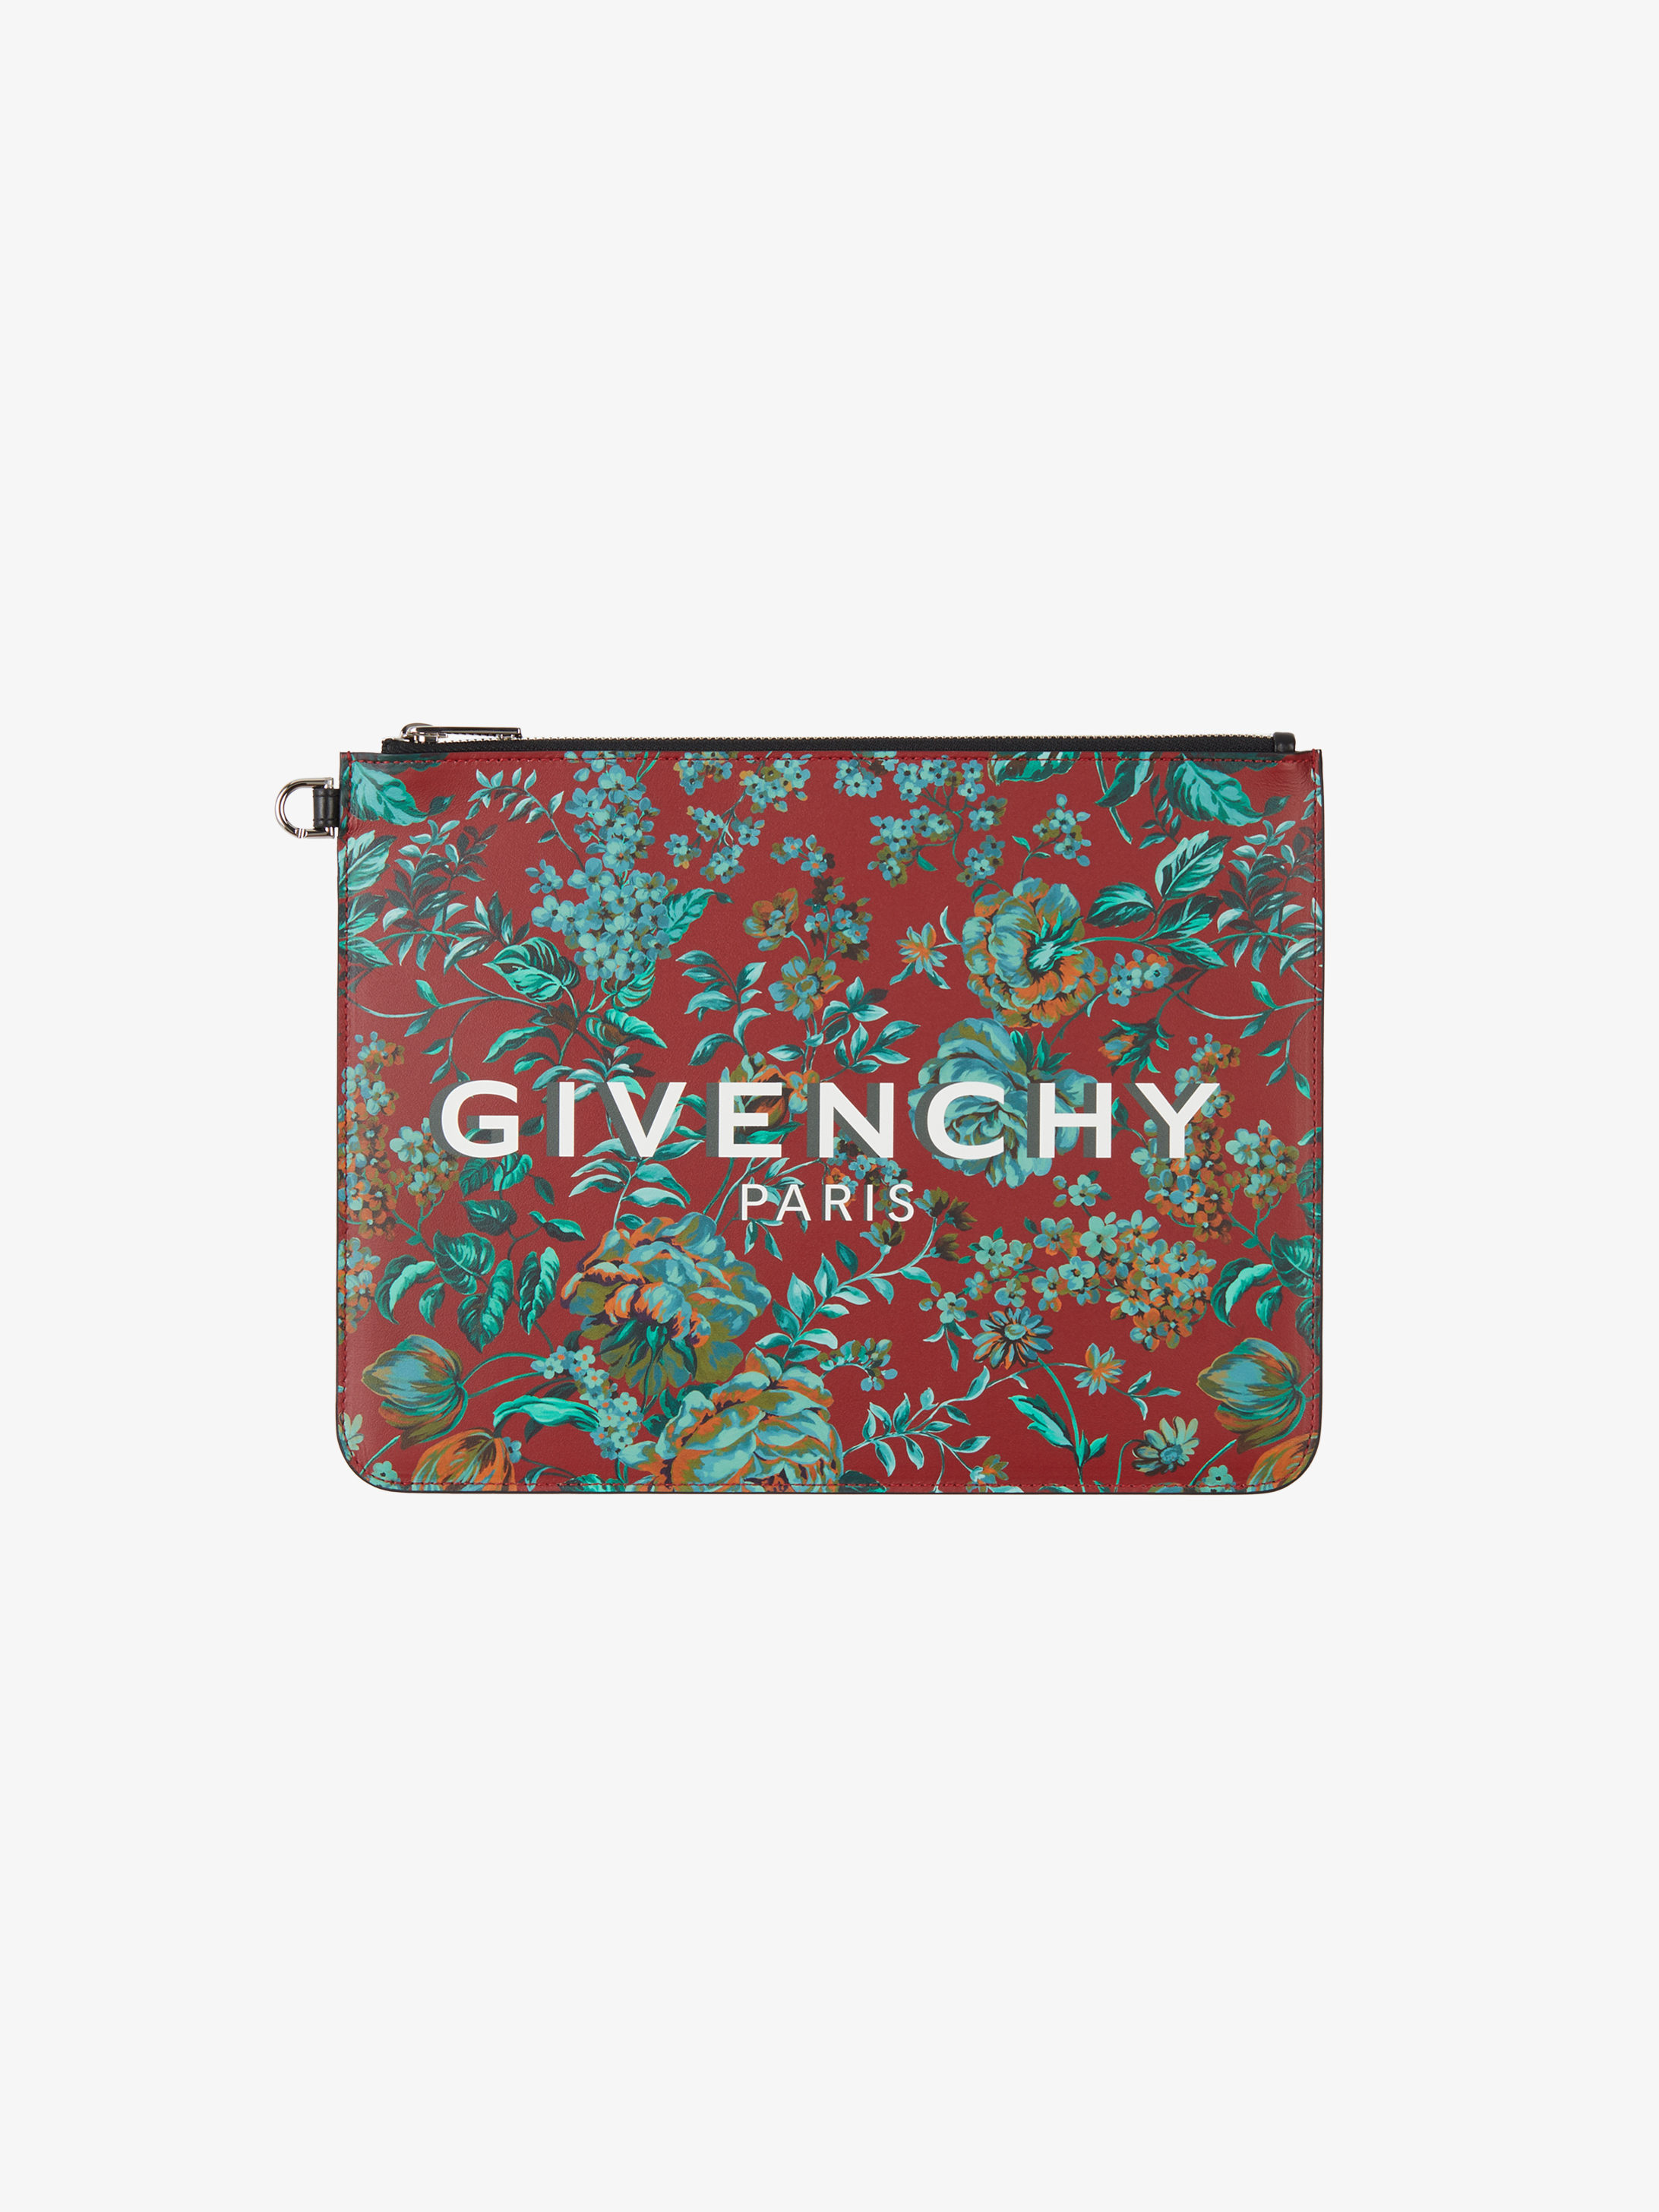 GIVENCHY PARIS large pouch in floral printed leather